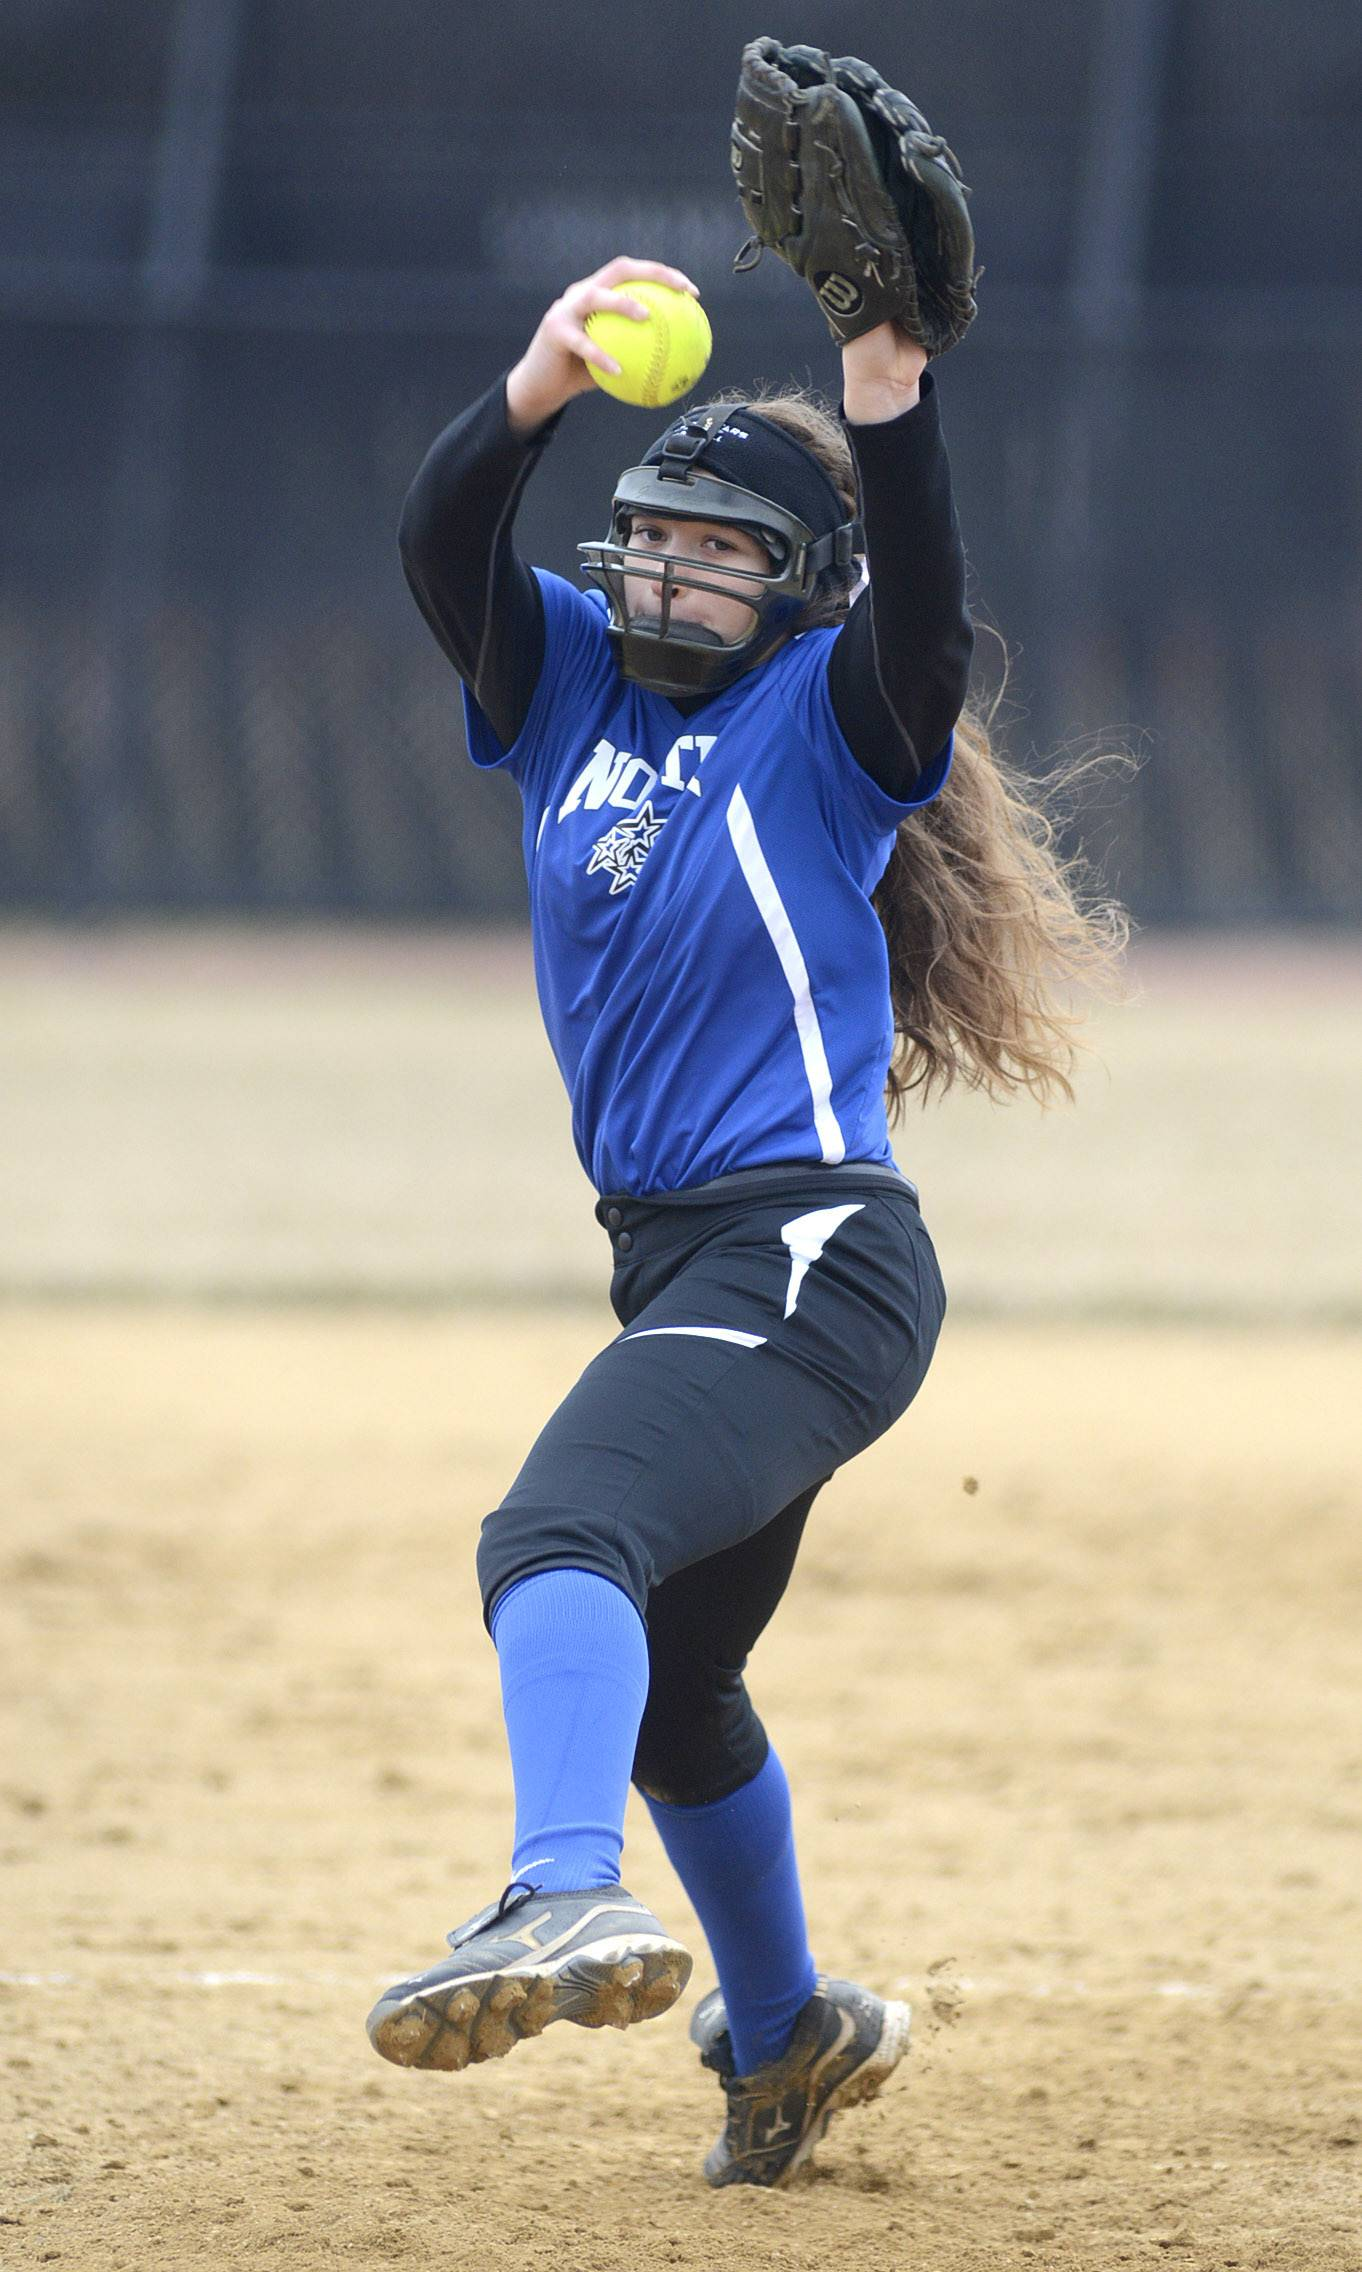 Laura Stoecker/lstoecker@dailyherald.com St. Charles North's Sabrina Rabin pitches in the game vs. Schaumburg on Wednesday, April 2.